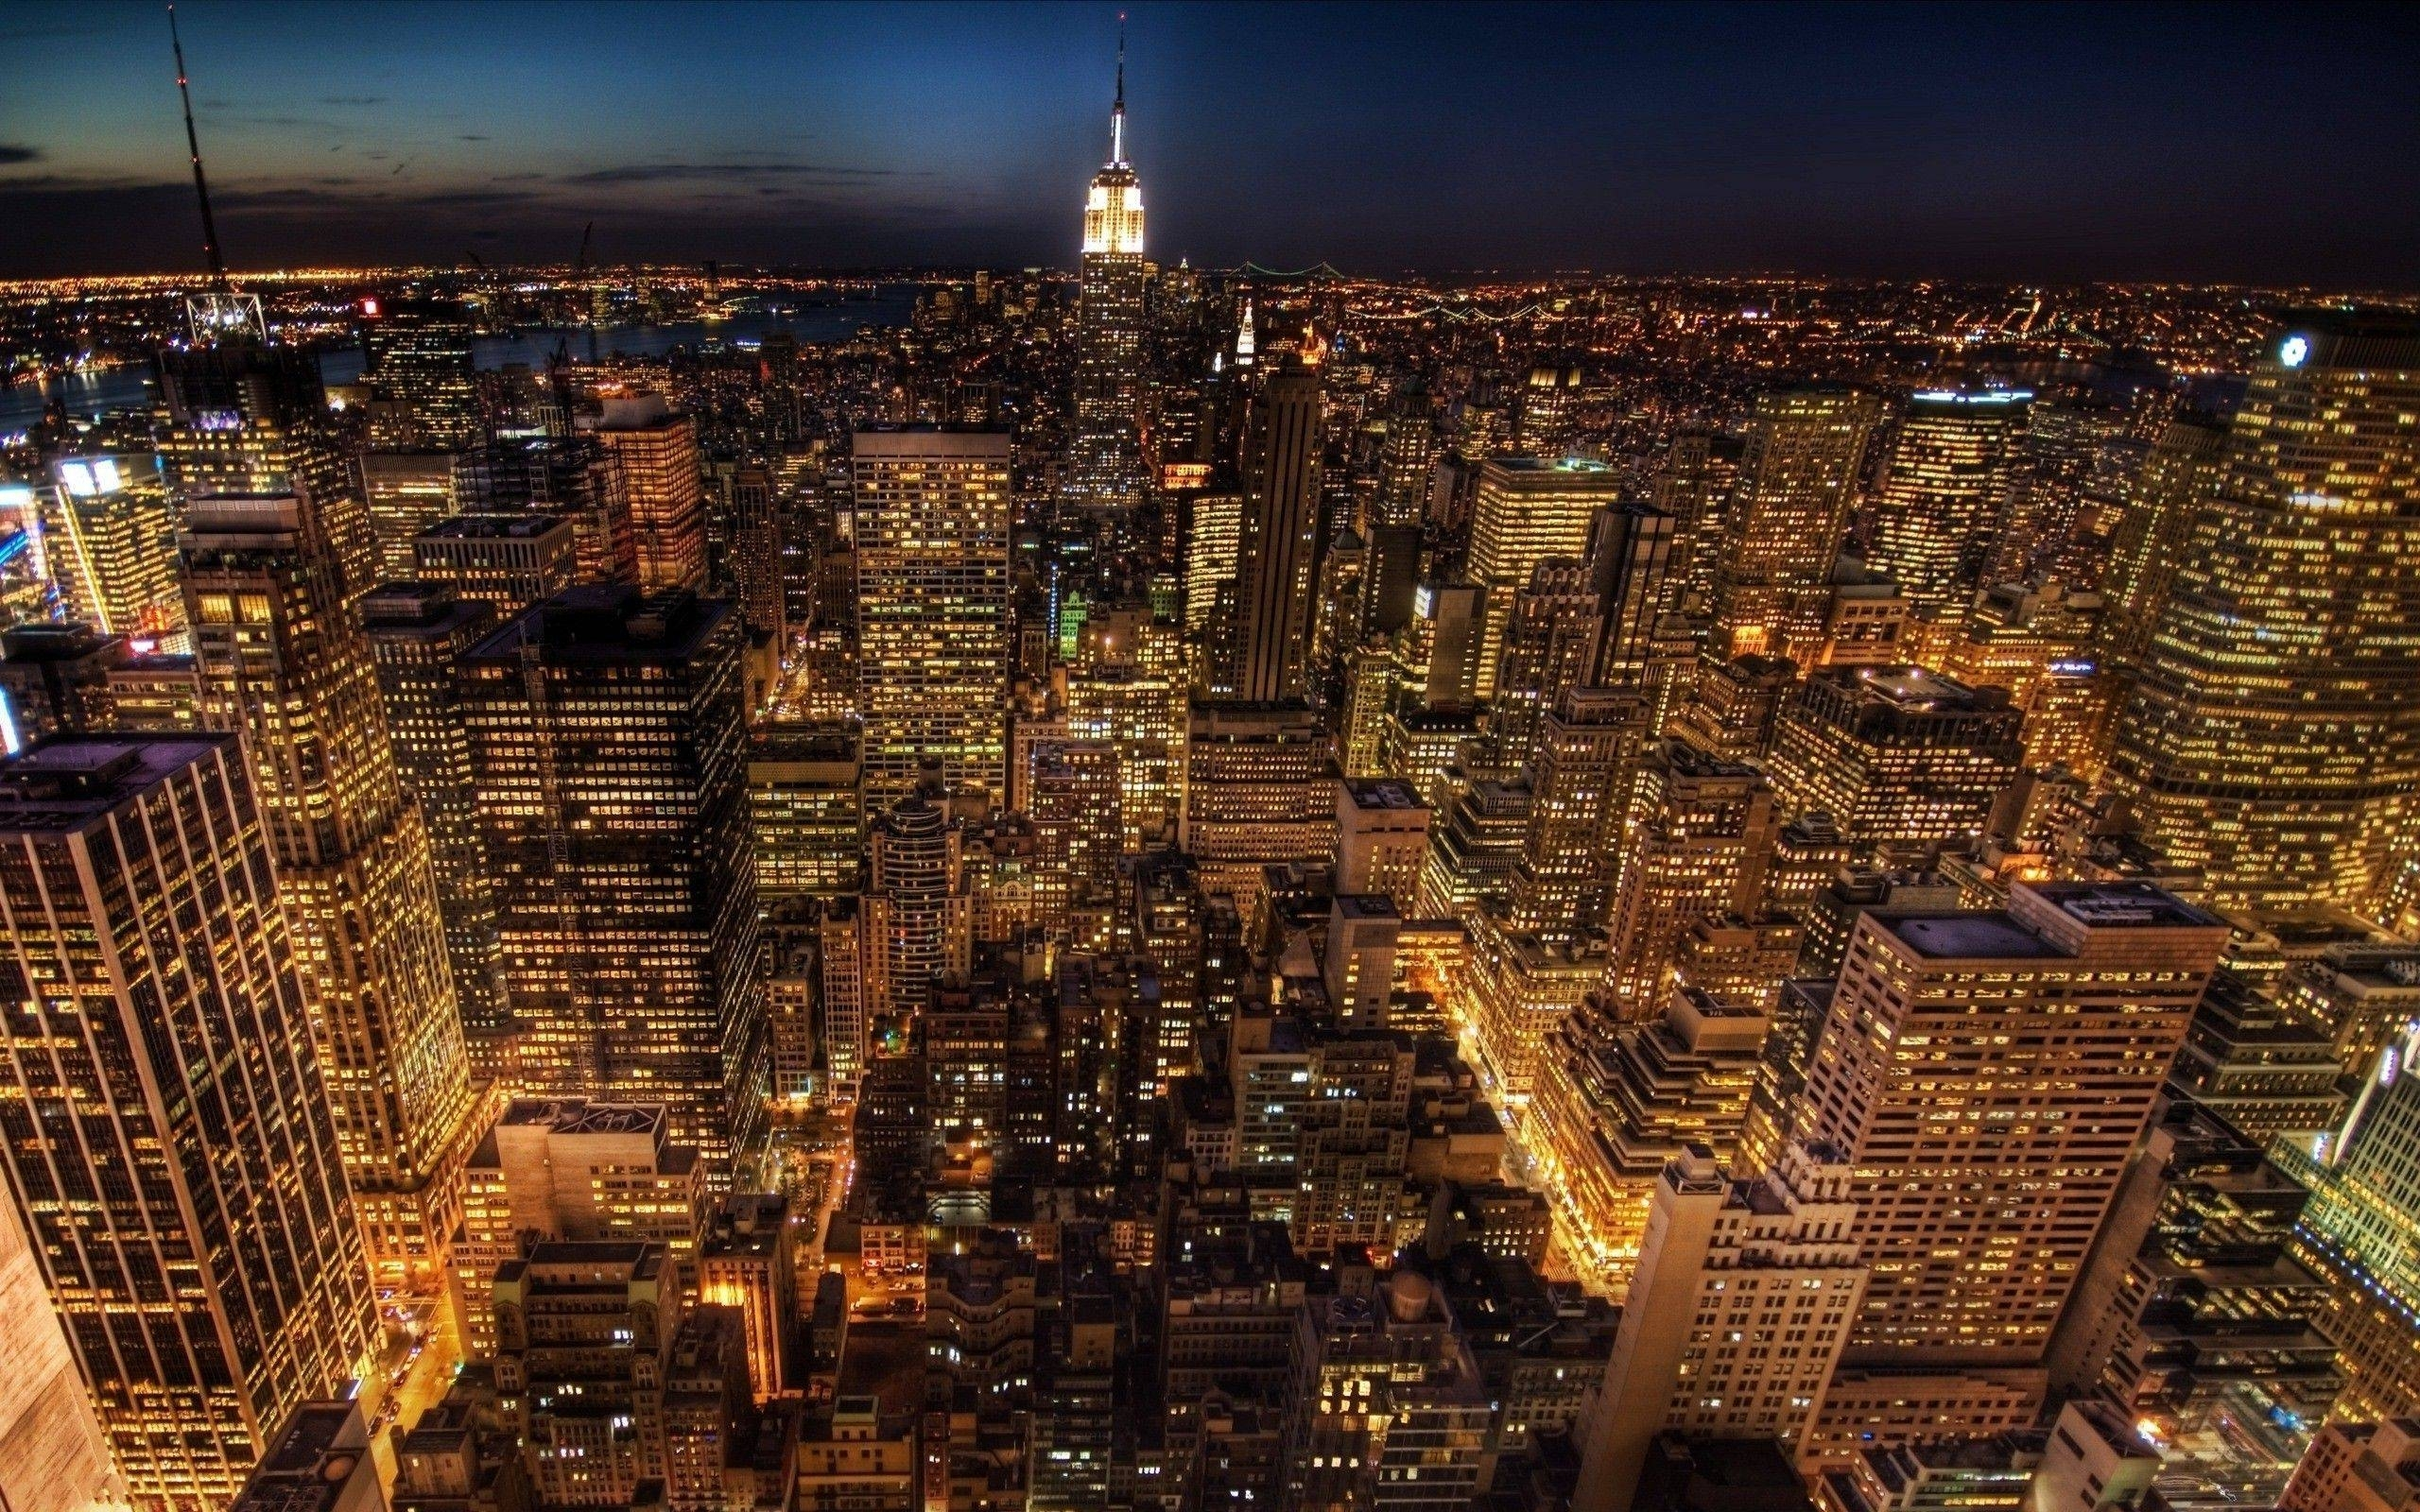 10 Best New York City Night Hd Wallpaper FULL HD 1080p For PC Background